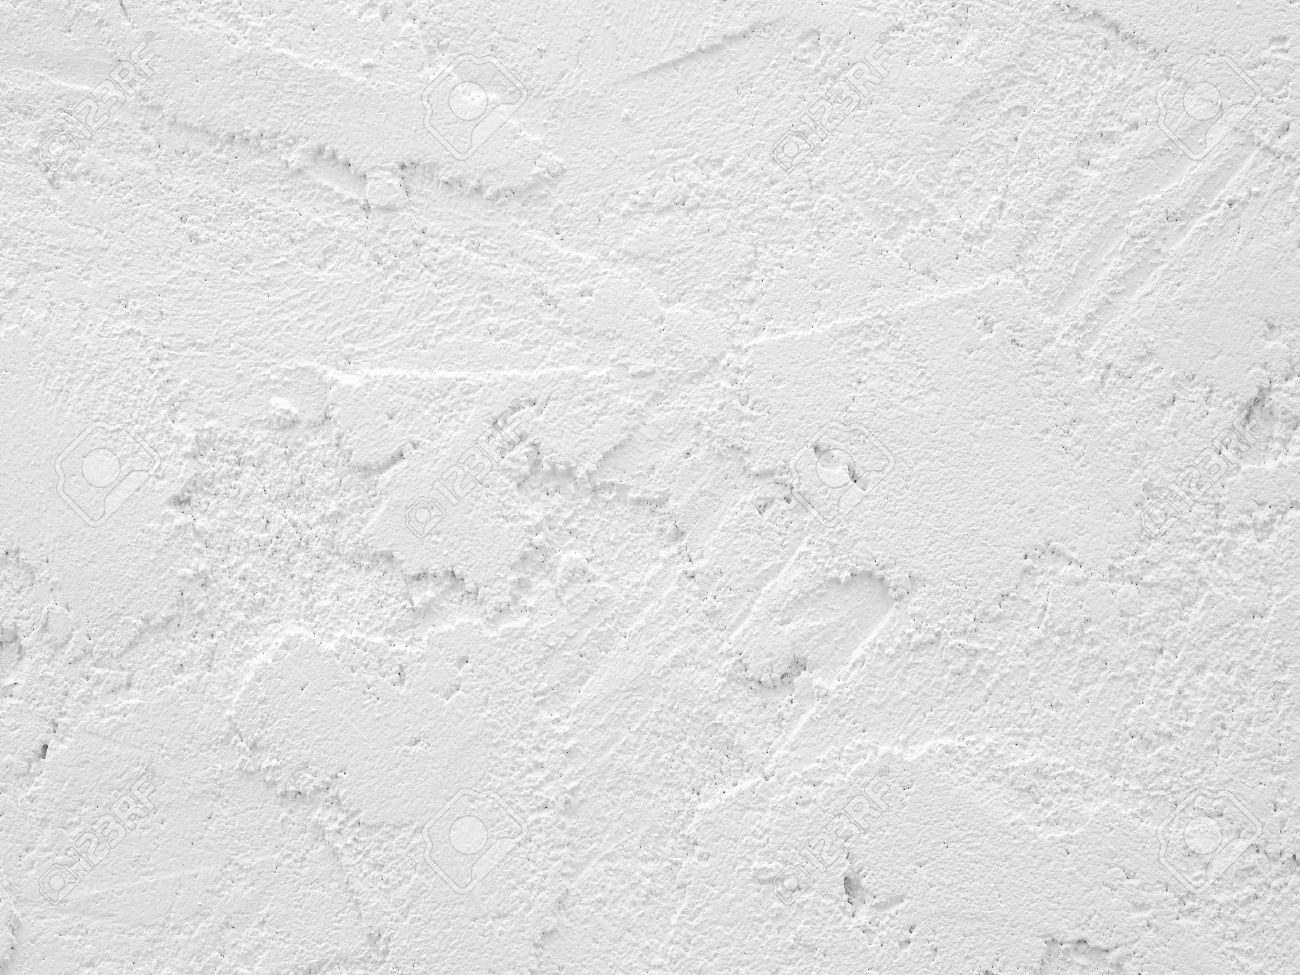 texture of rough white cement wall - 58806302